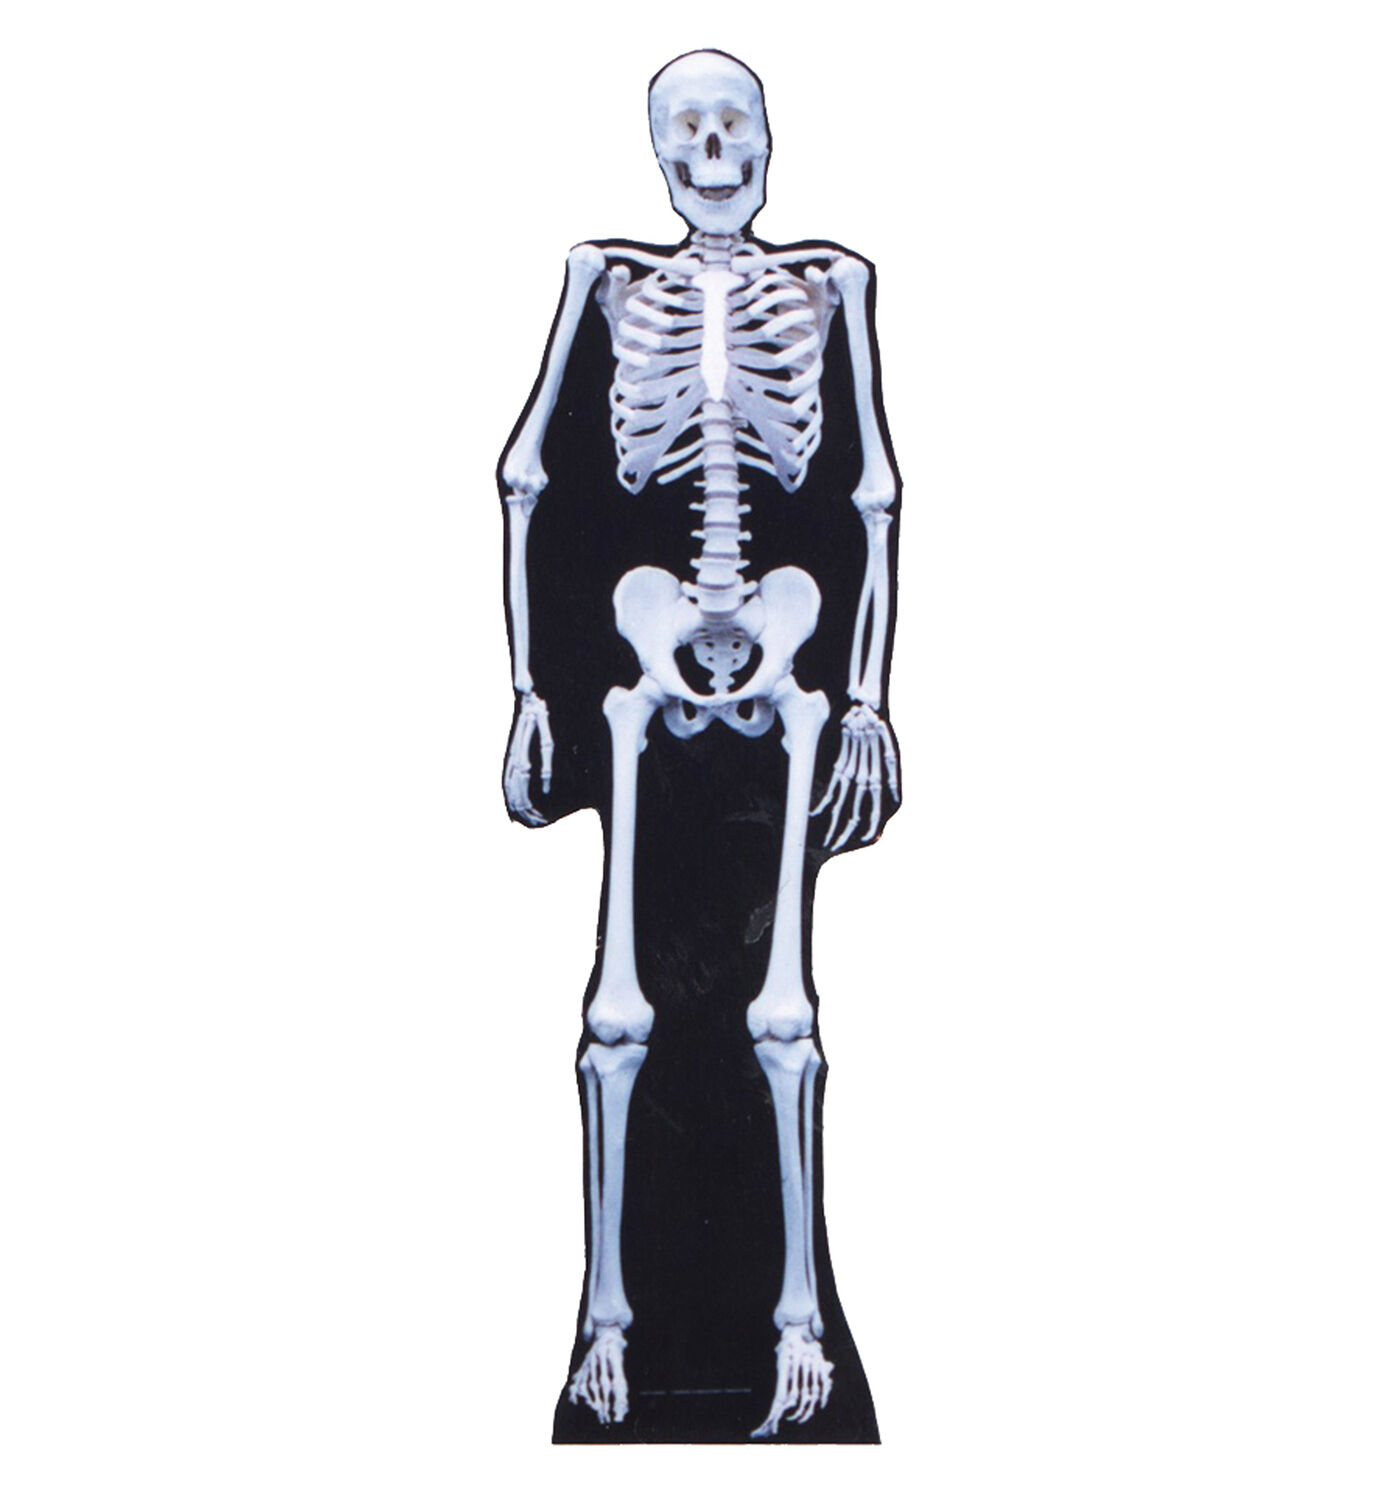 SKELETON HALLOWEEN DECORATIONS LIFESIZE CARDBOARD STANDUP